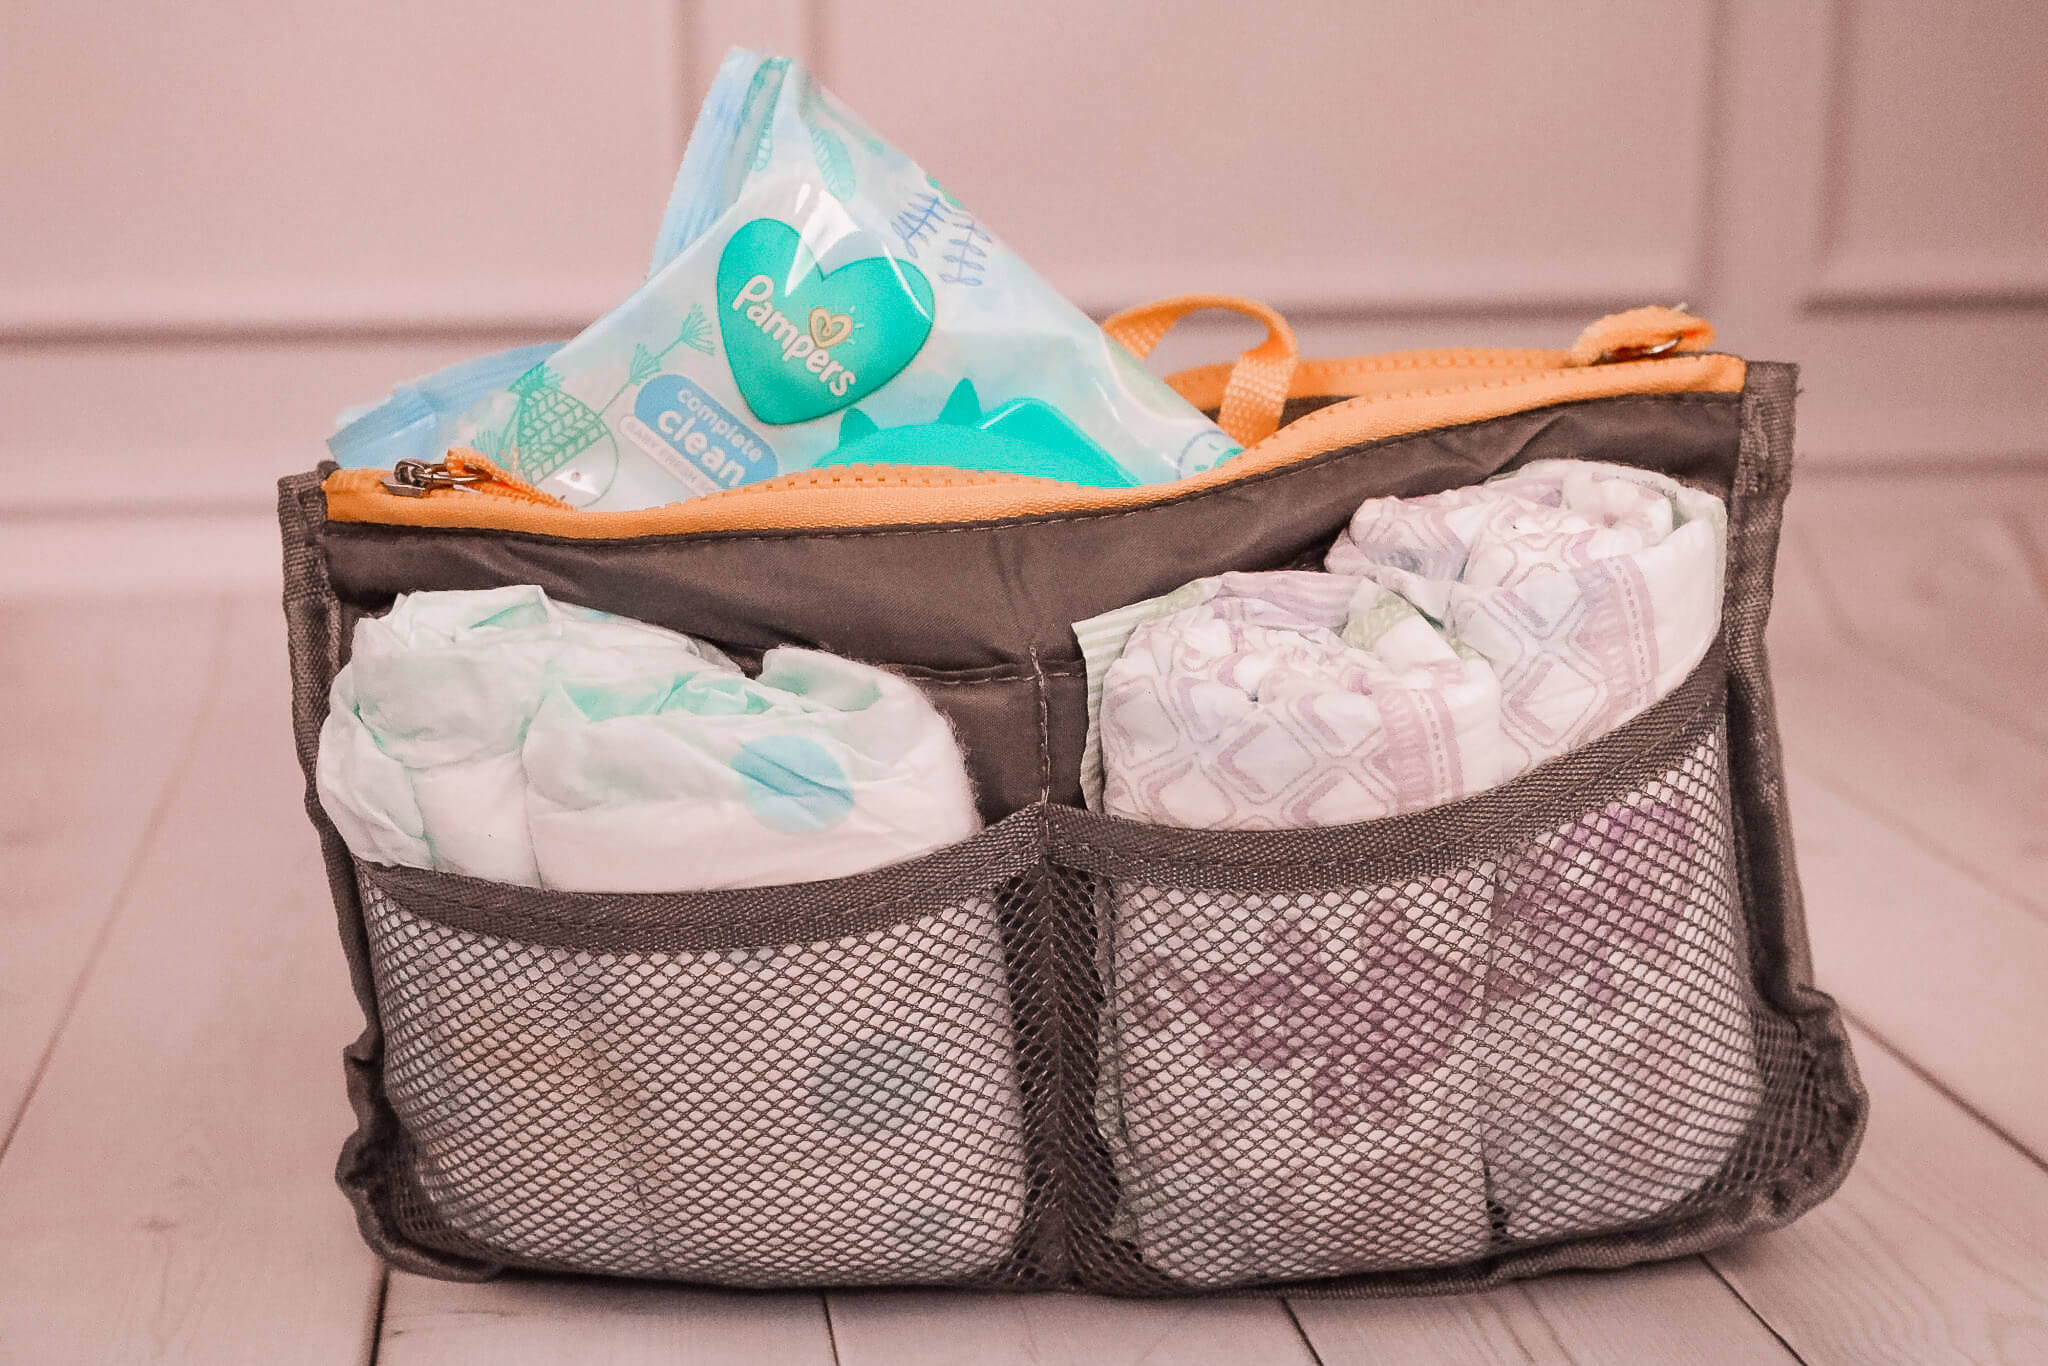 What to keep in a diaper bag